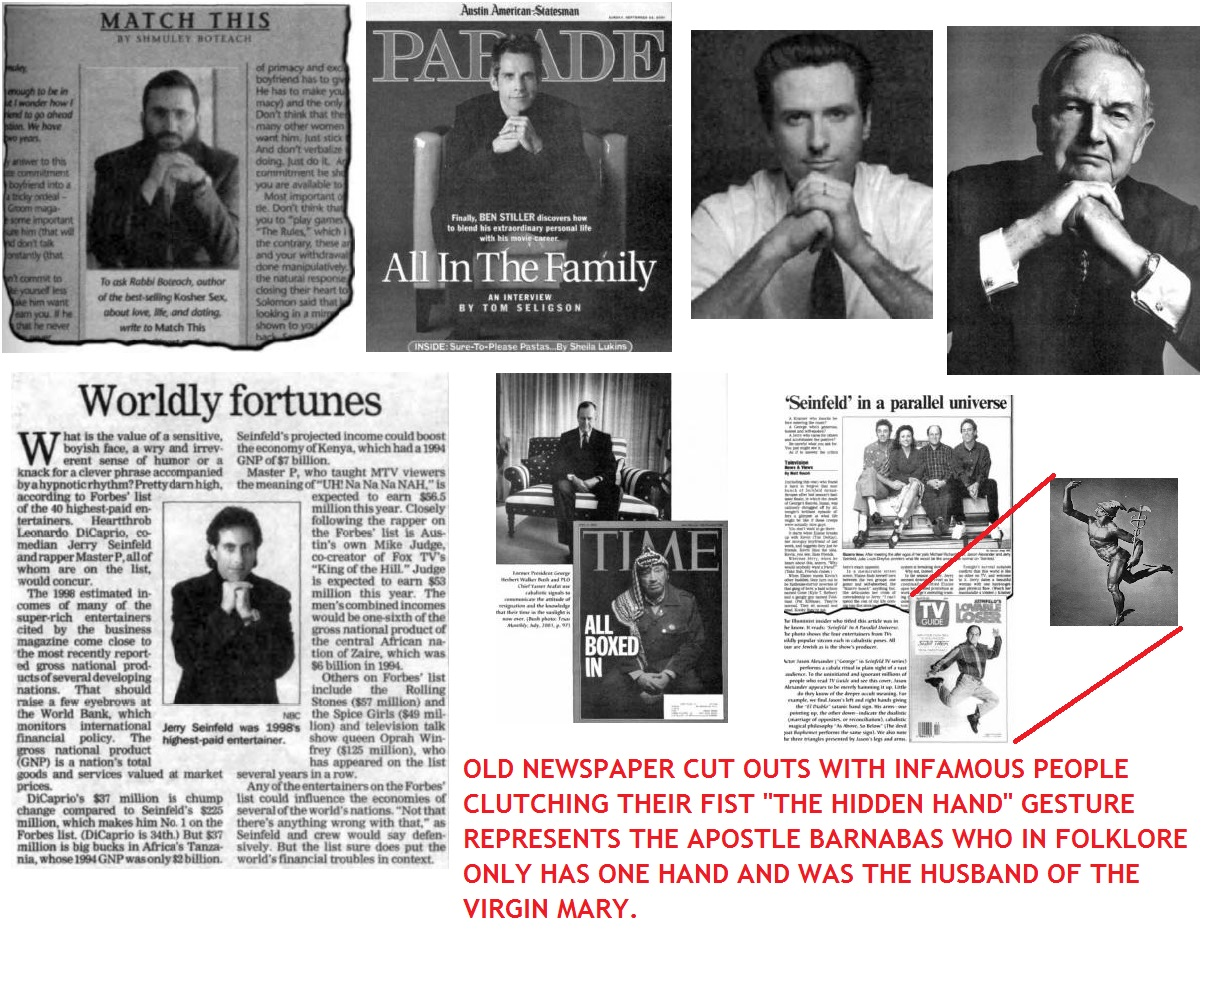 Masonic hand gesture on old newspaper articles truth control masonic hand gesture on old newspaper articles buycottarizona Images